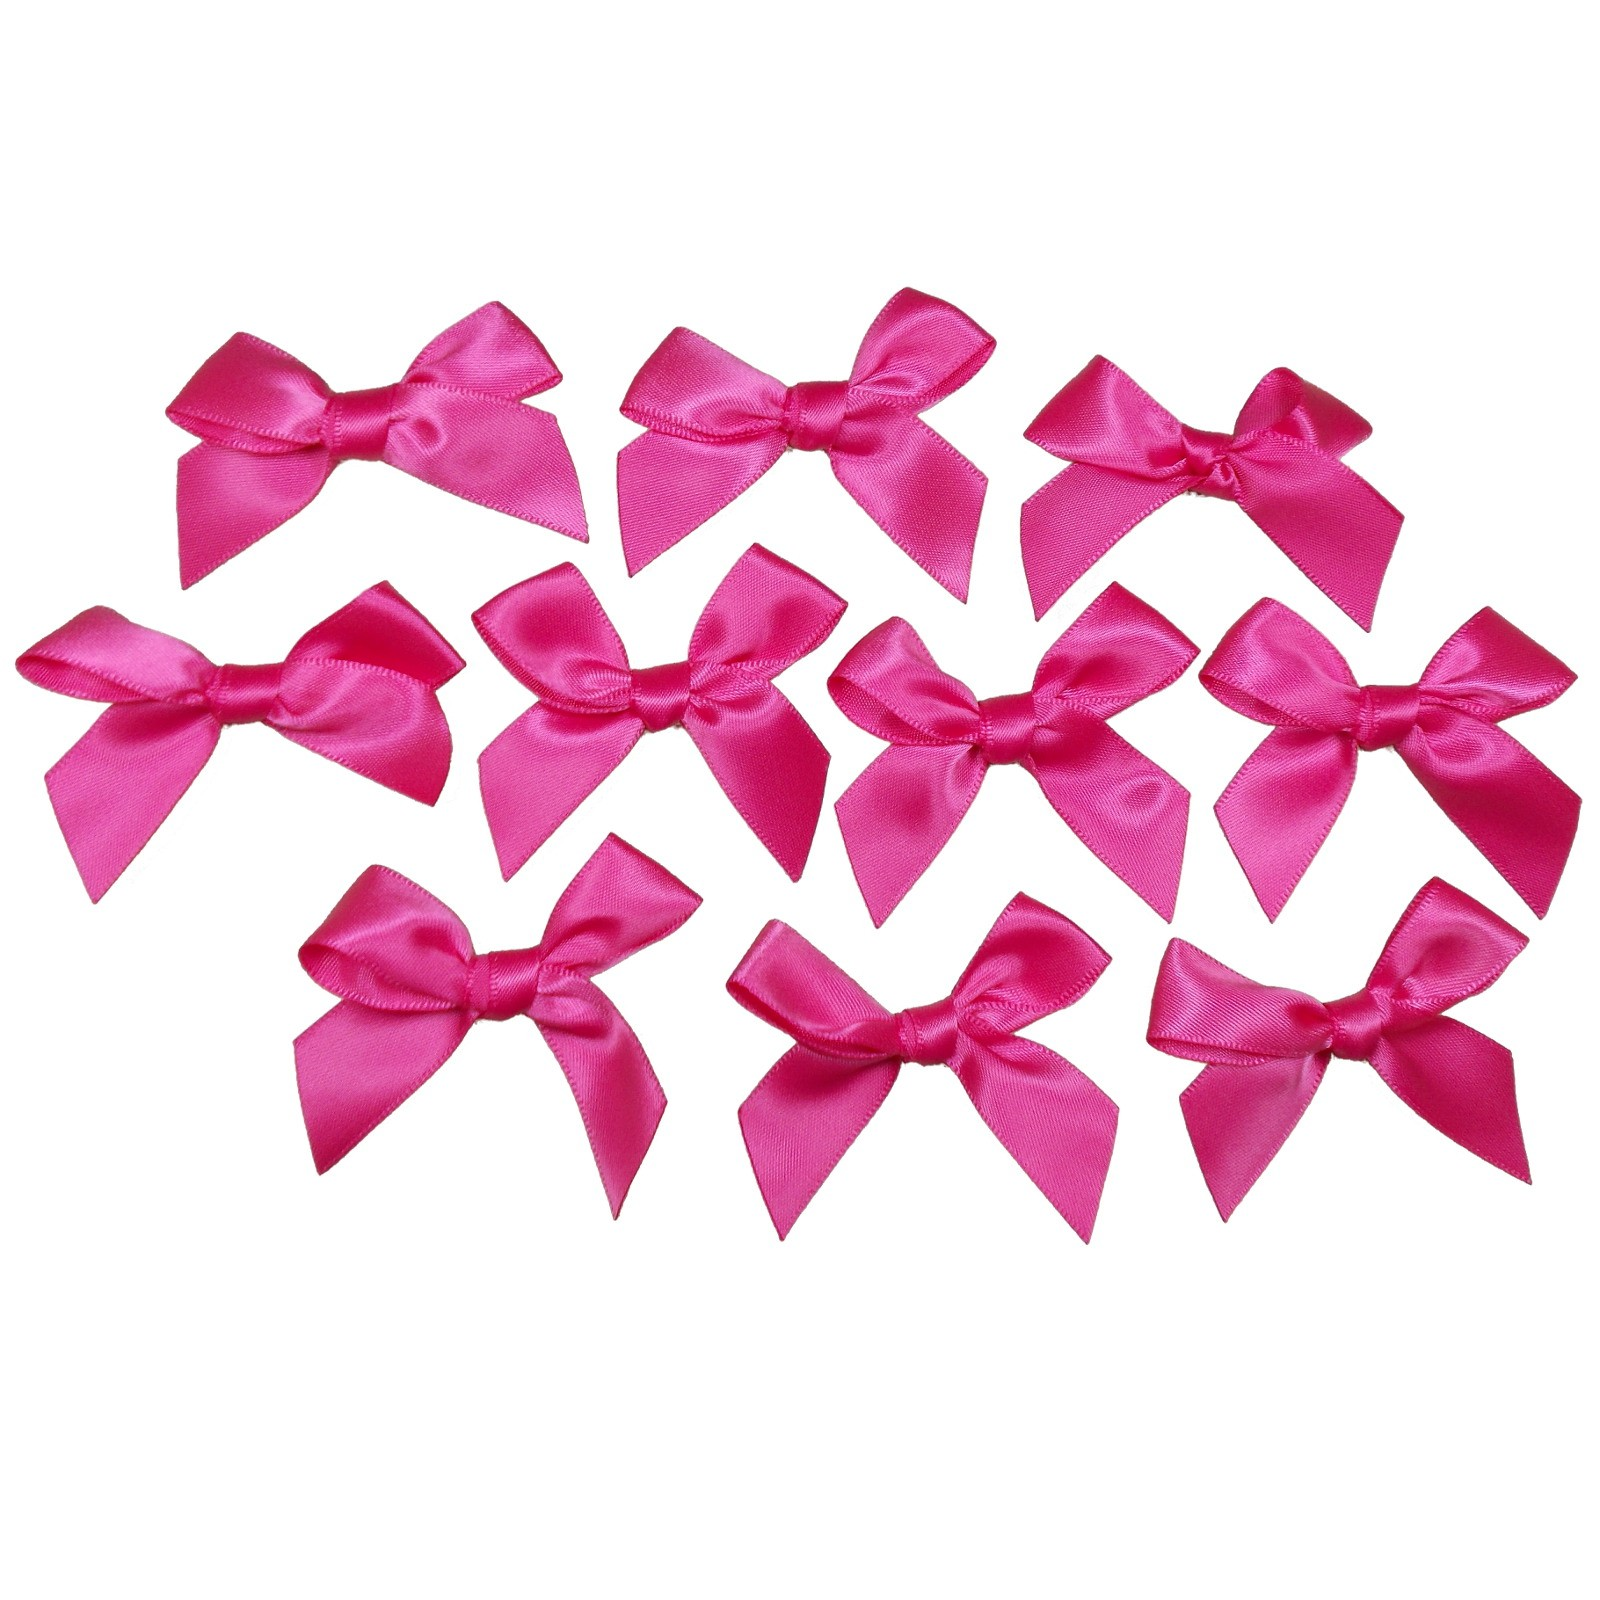 Satin Ribbon Bows approx 5.5cm wide Dark Pink Pack of 10